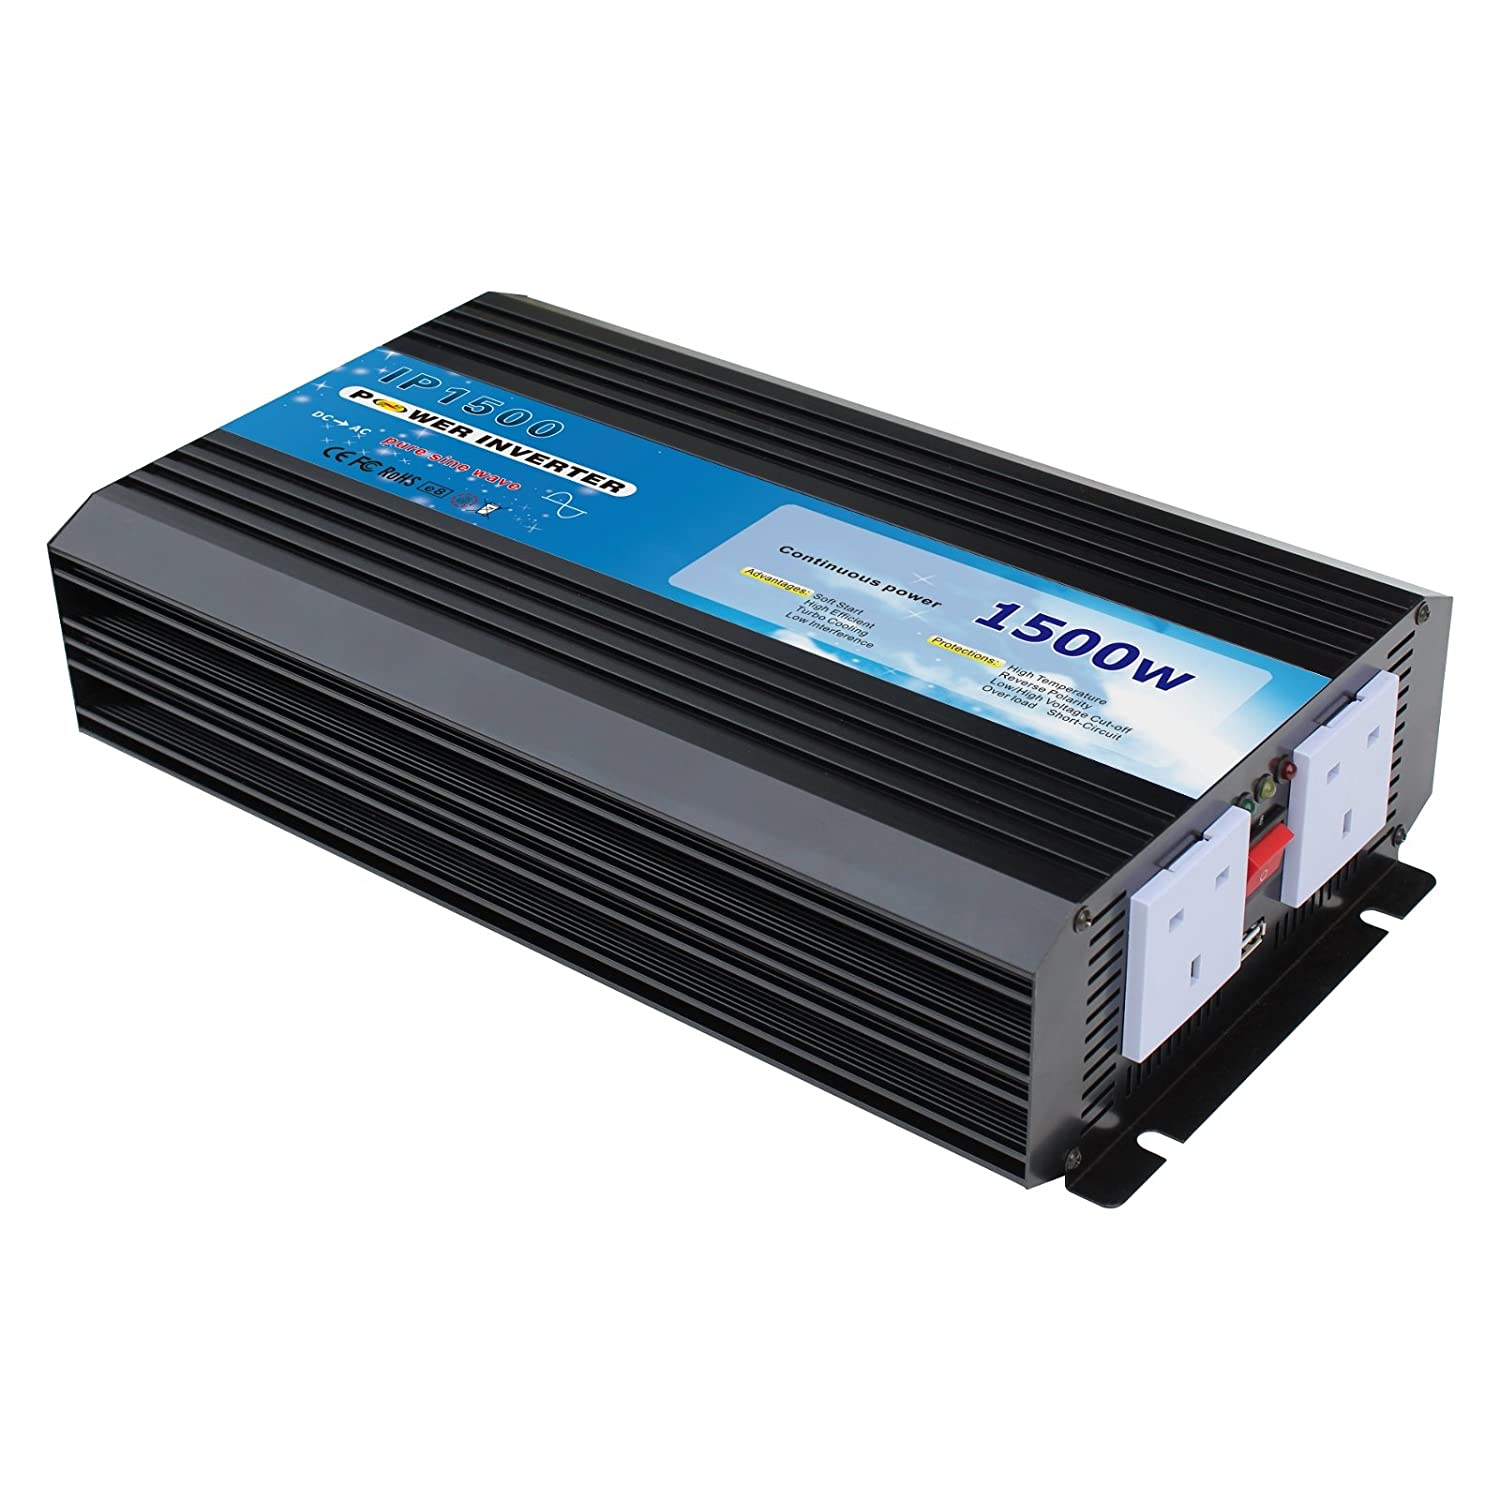 1500w Pure Sine Wave Power Inverter 12v Dc To 230v Ac High Circuit Electronics